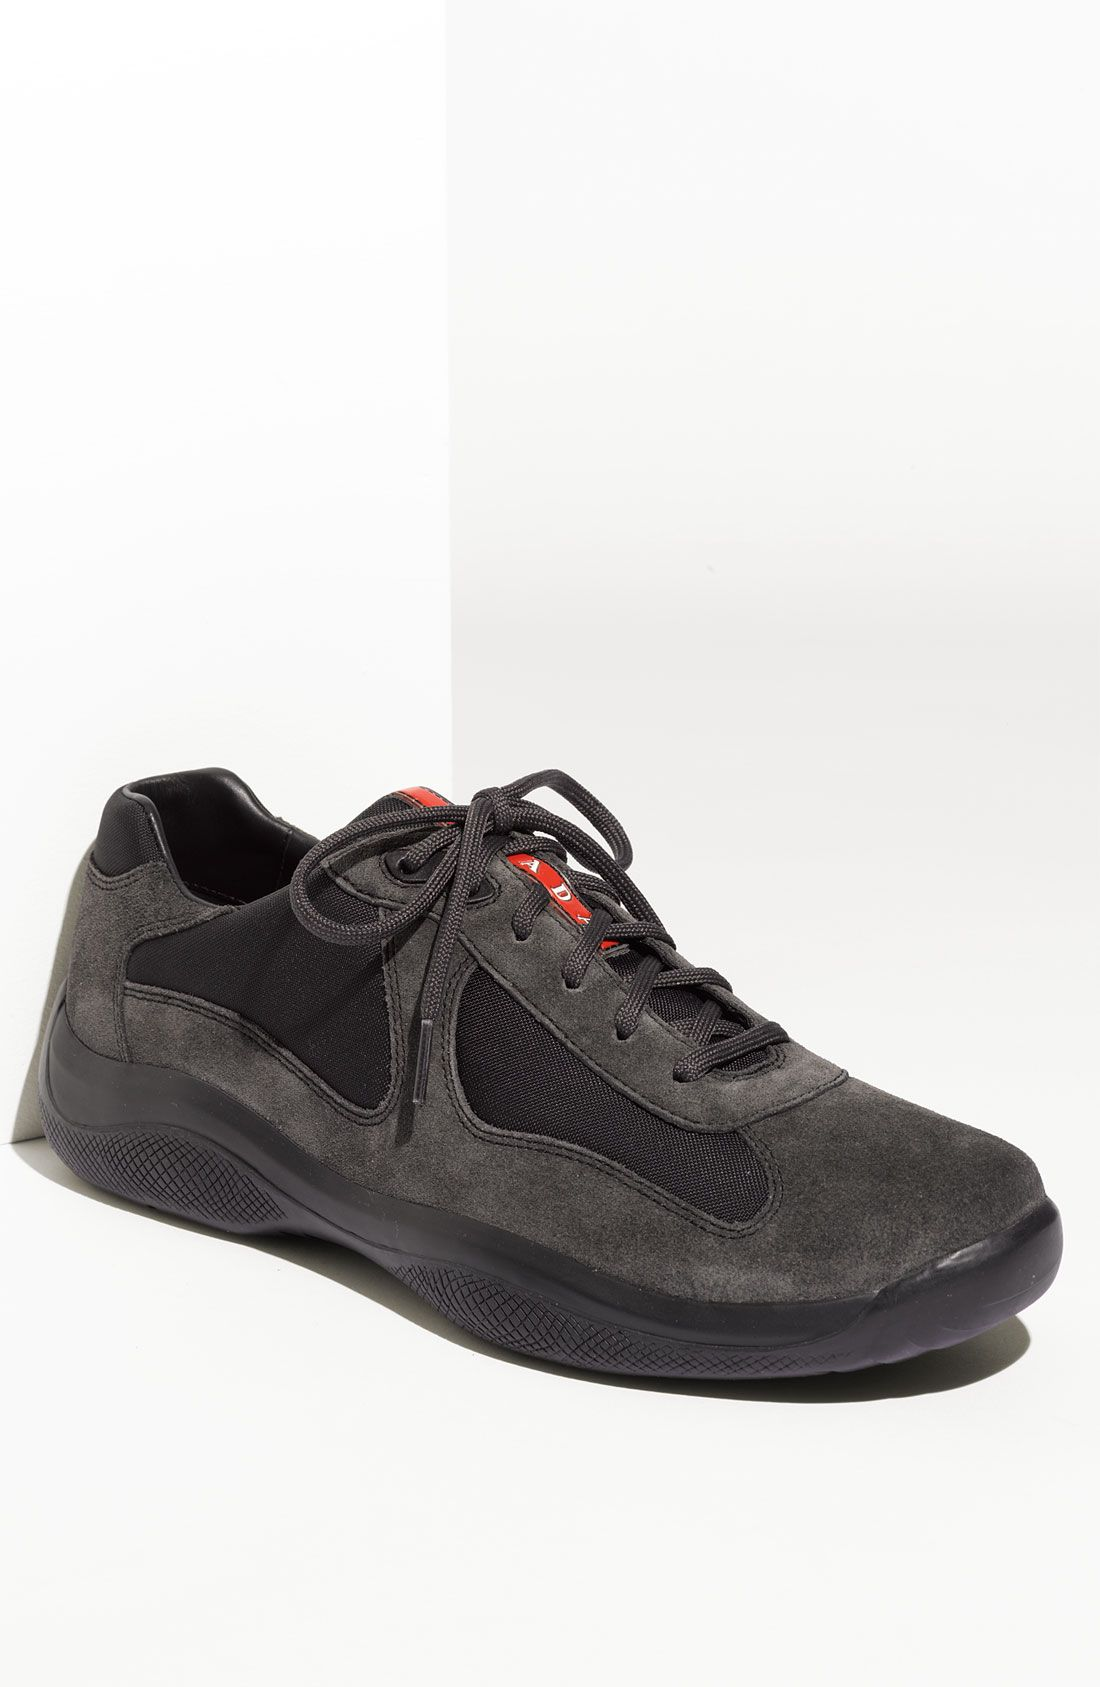 Shop Men's Prada Sneakers on Lyst. Track over 1886 Prada Sneakers for stock  and sale updates.